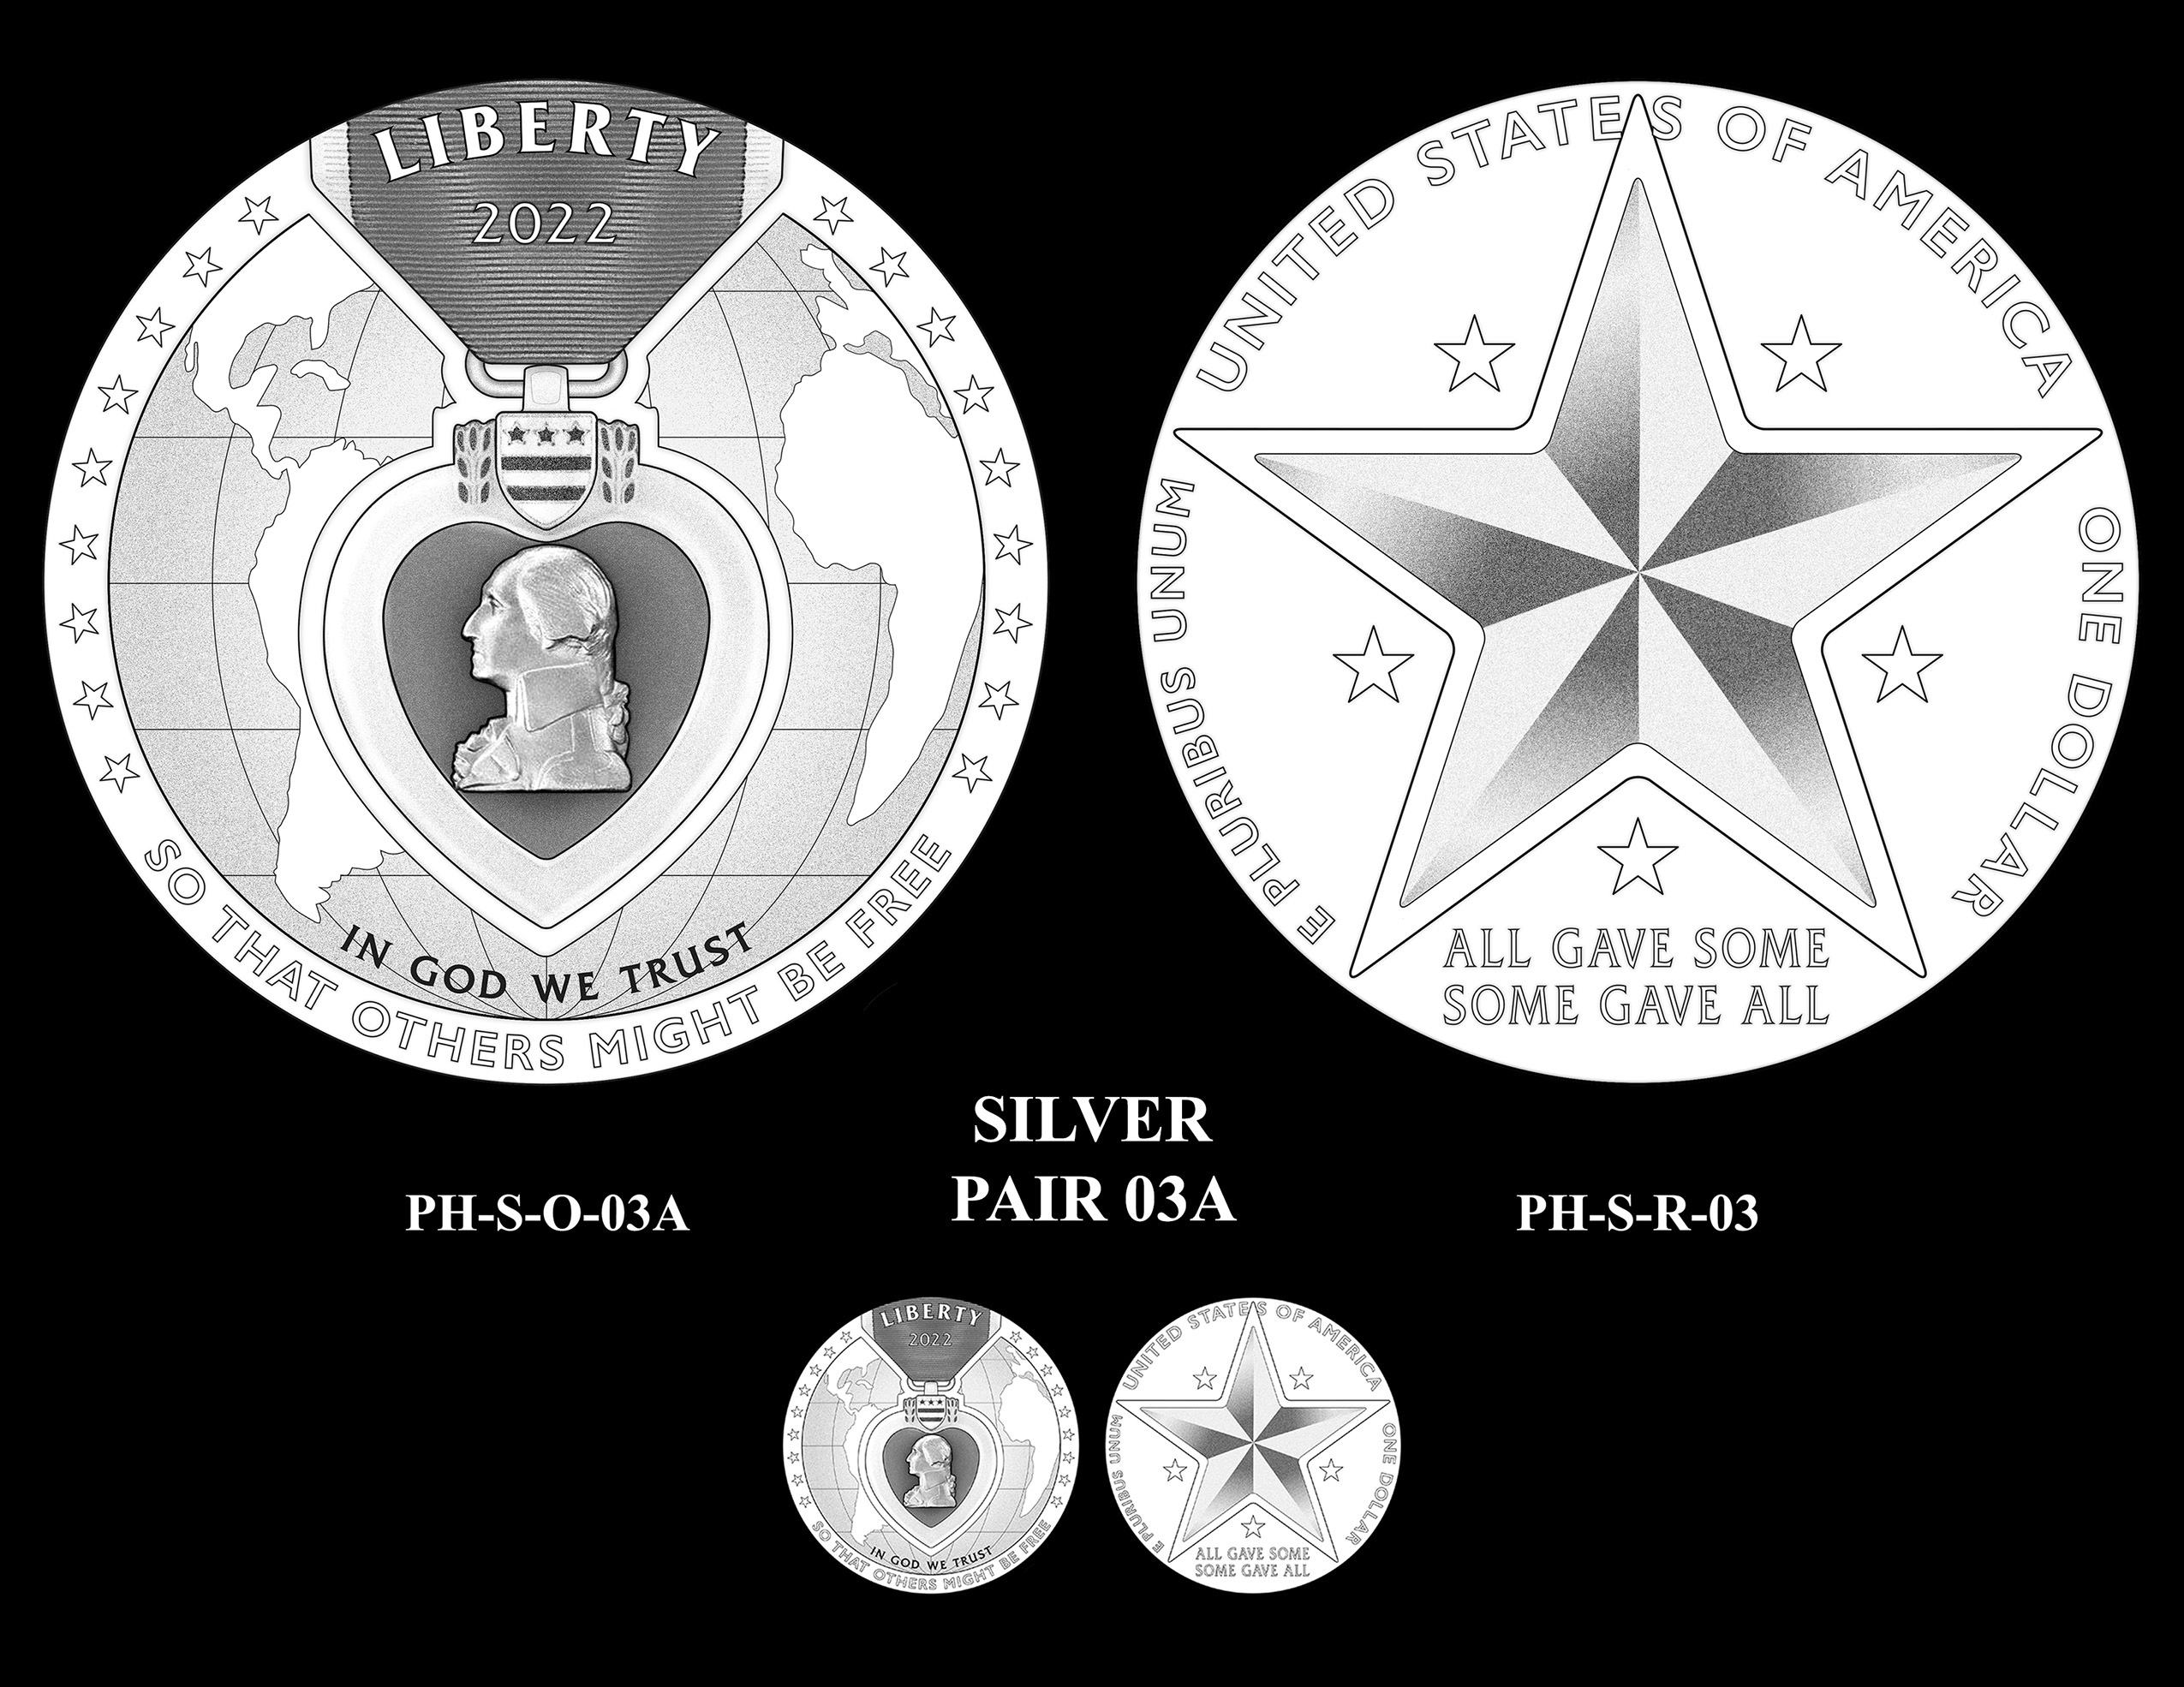 Silver Pair 03A -- National Purple Heart Hall of Honor Commemorative Coin Program